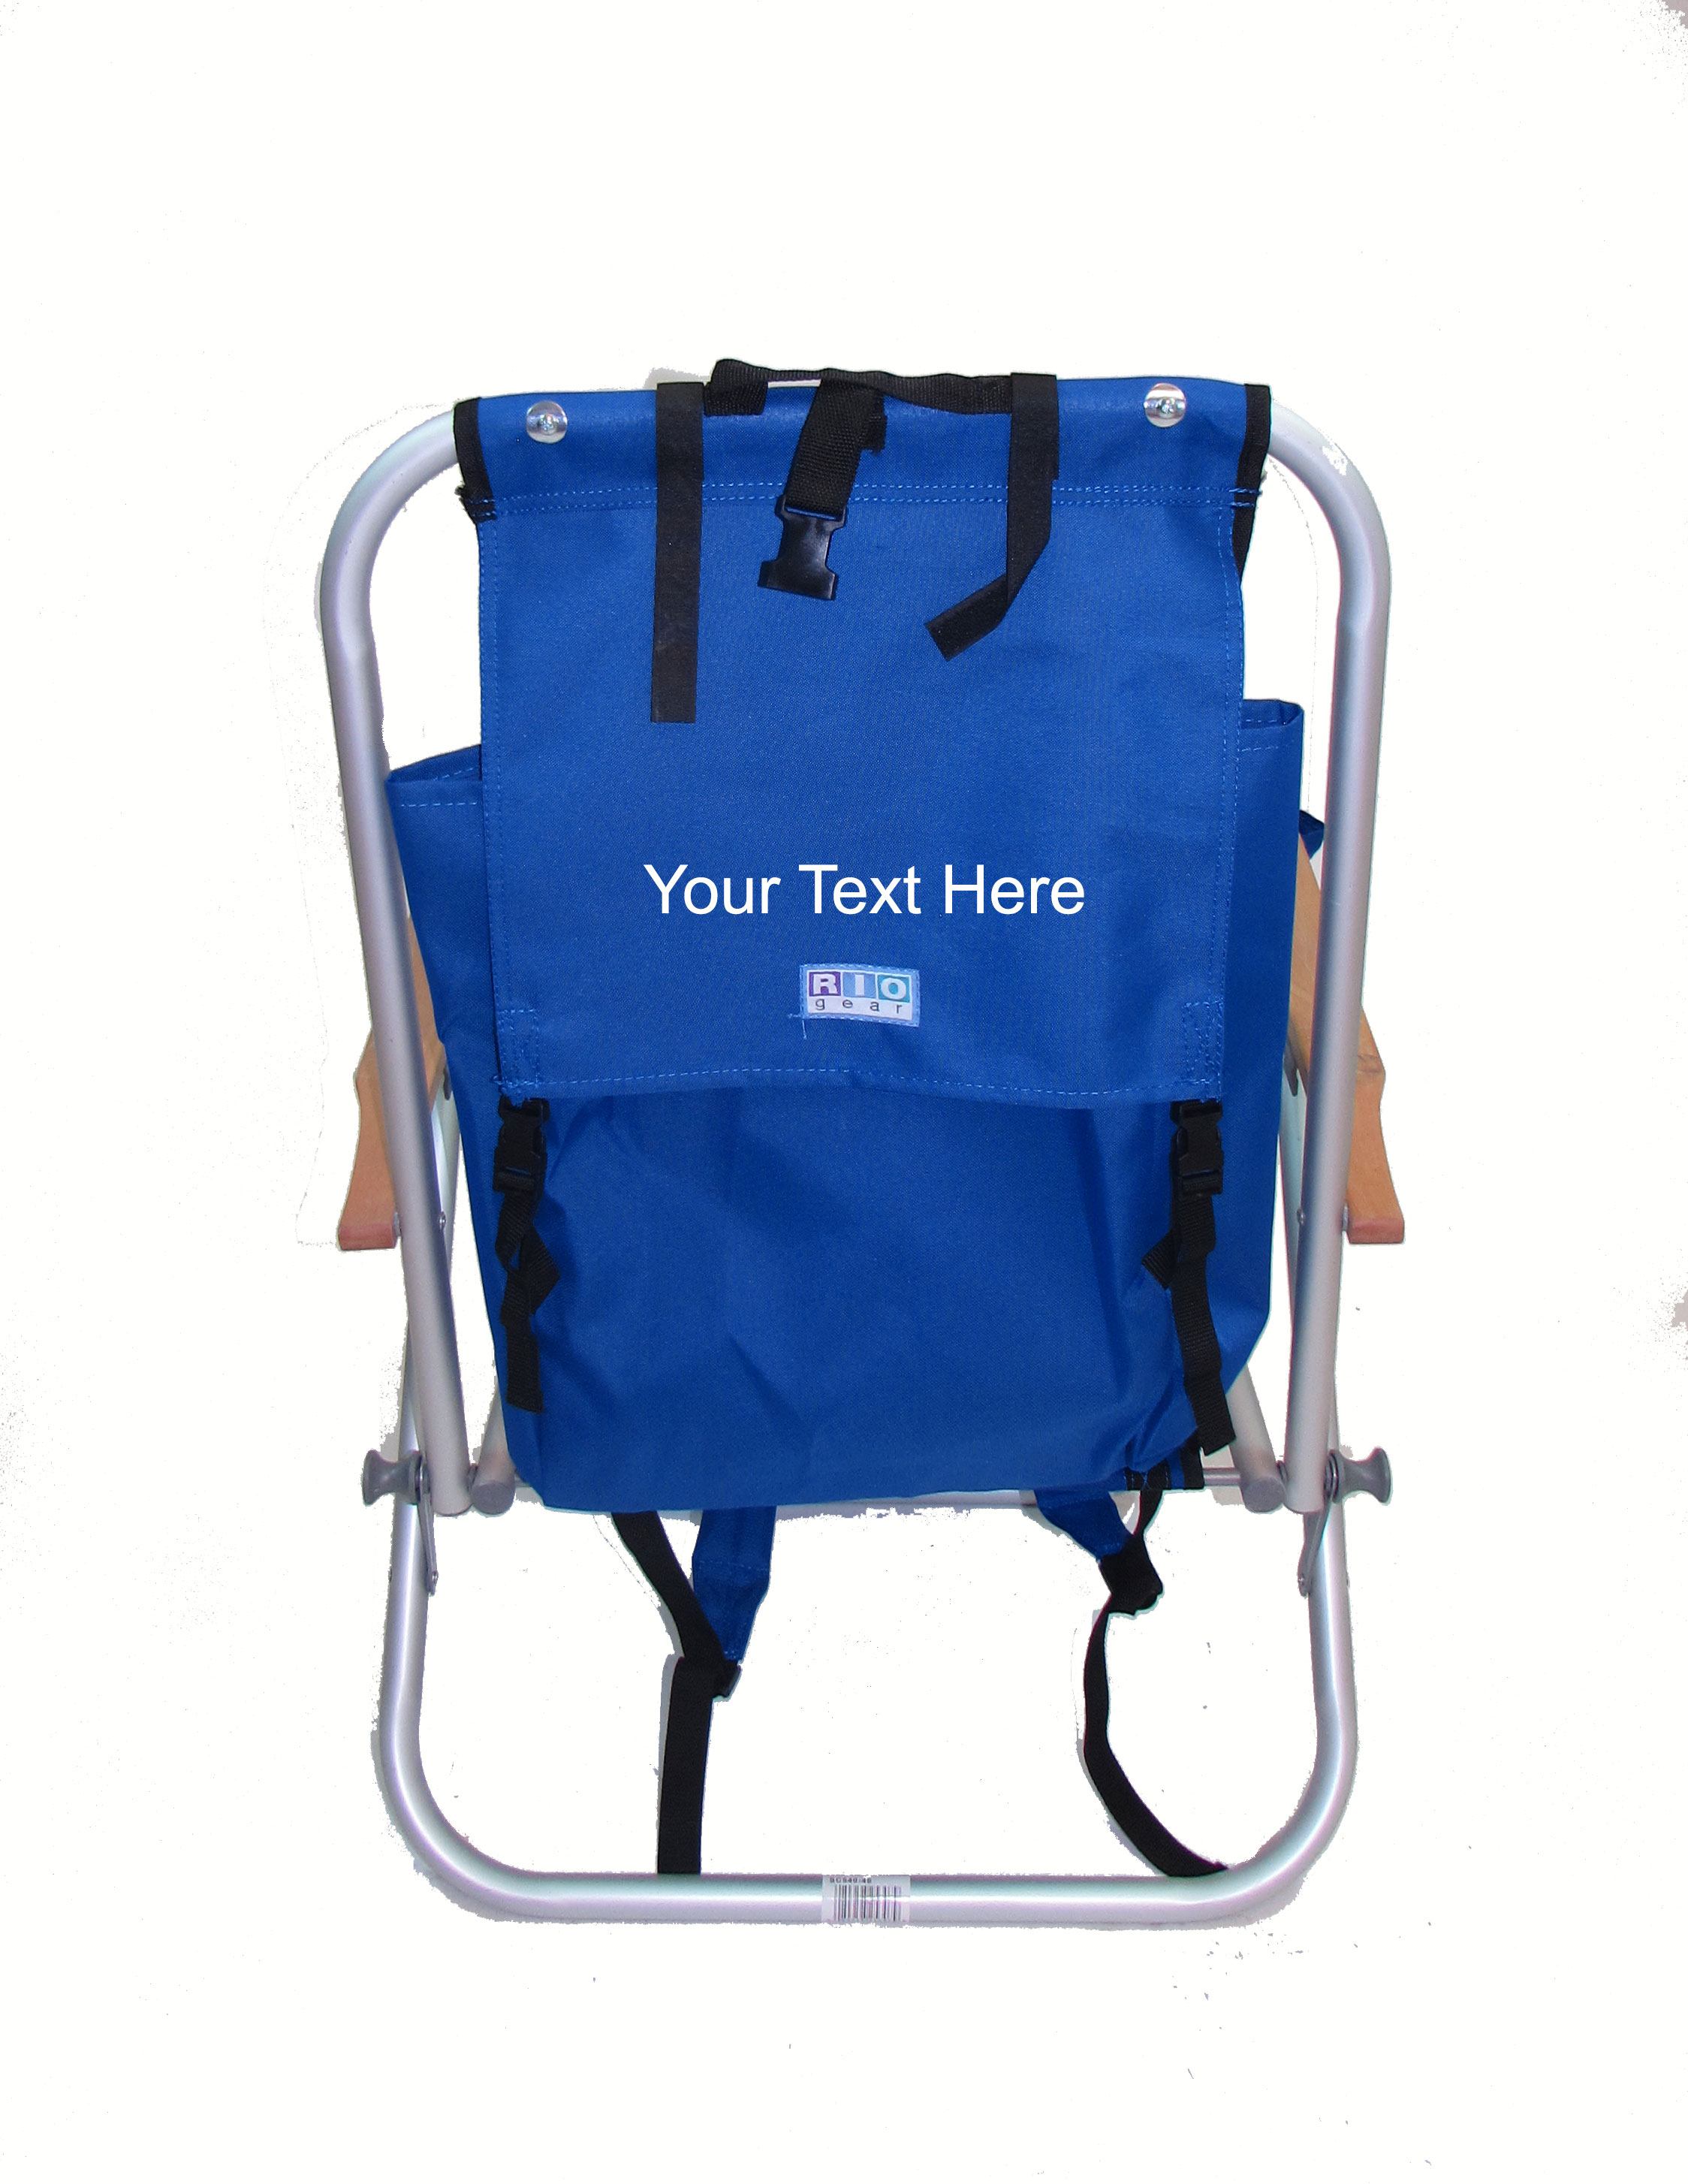 IMPRINTED Personalized Aluminum Backpack Chair by Rio